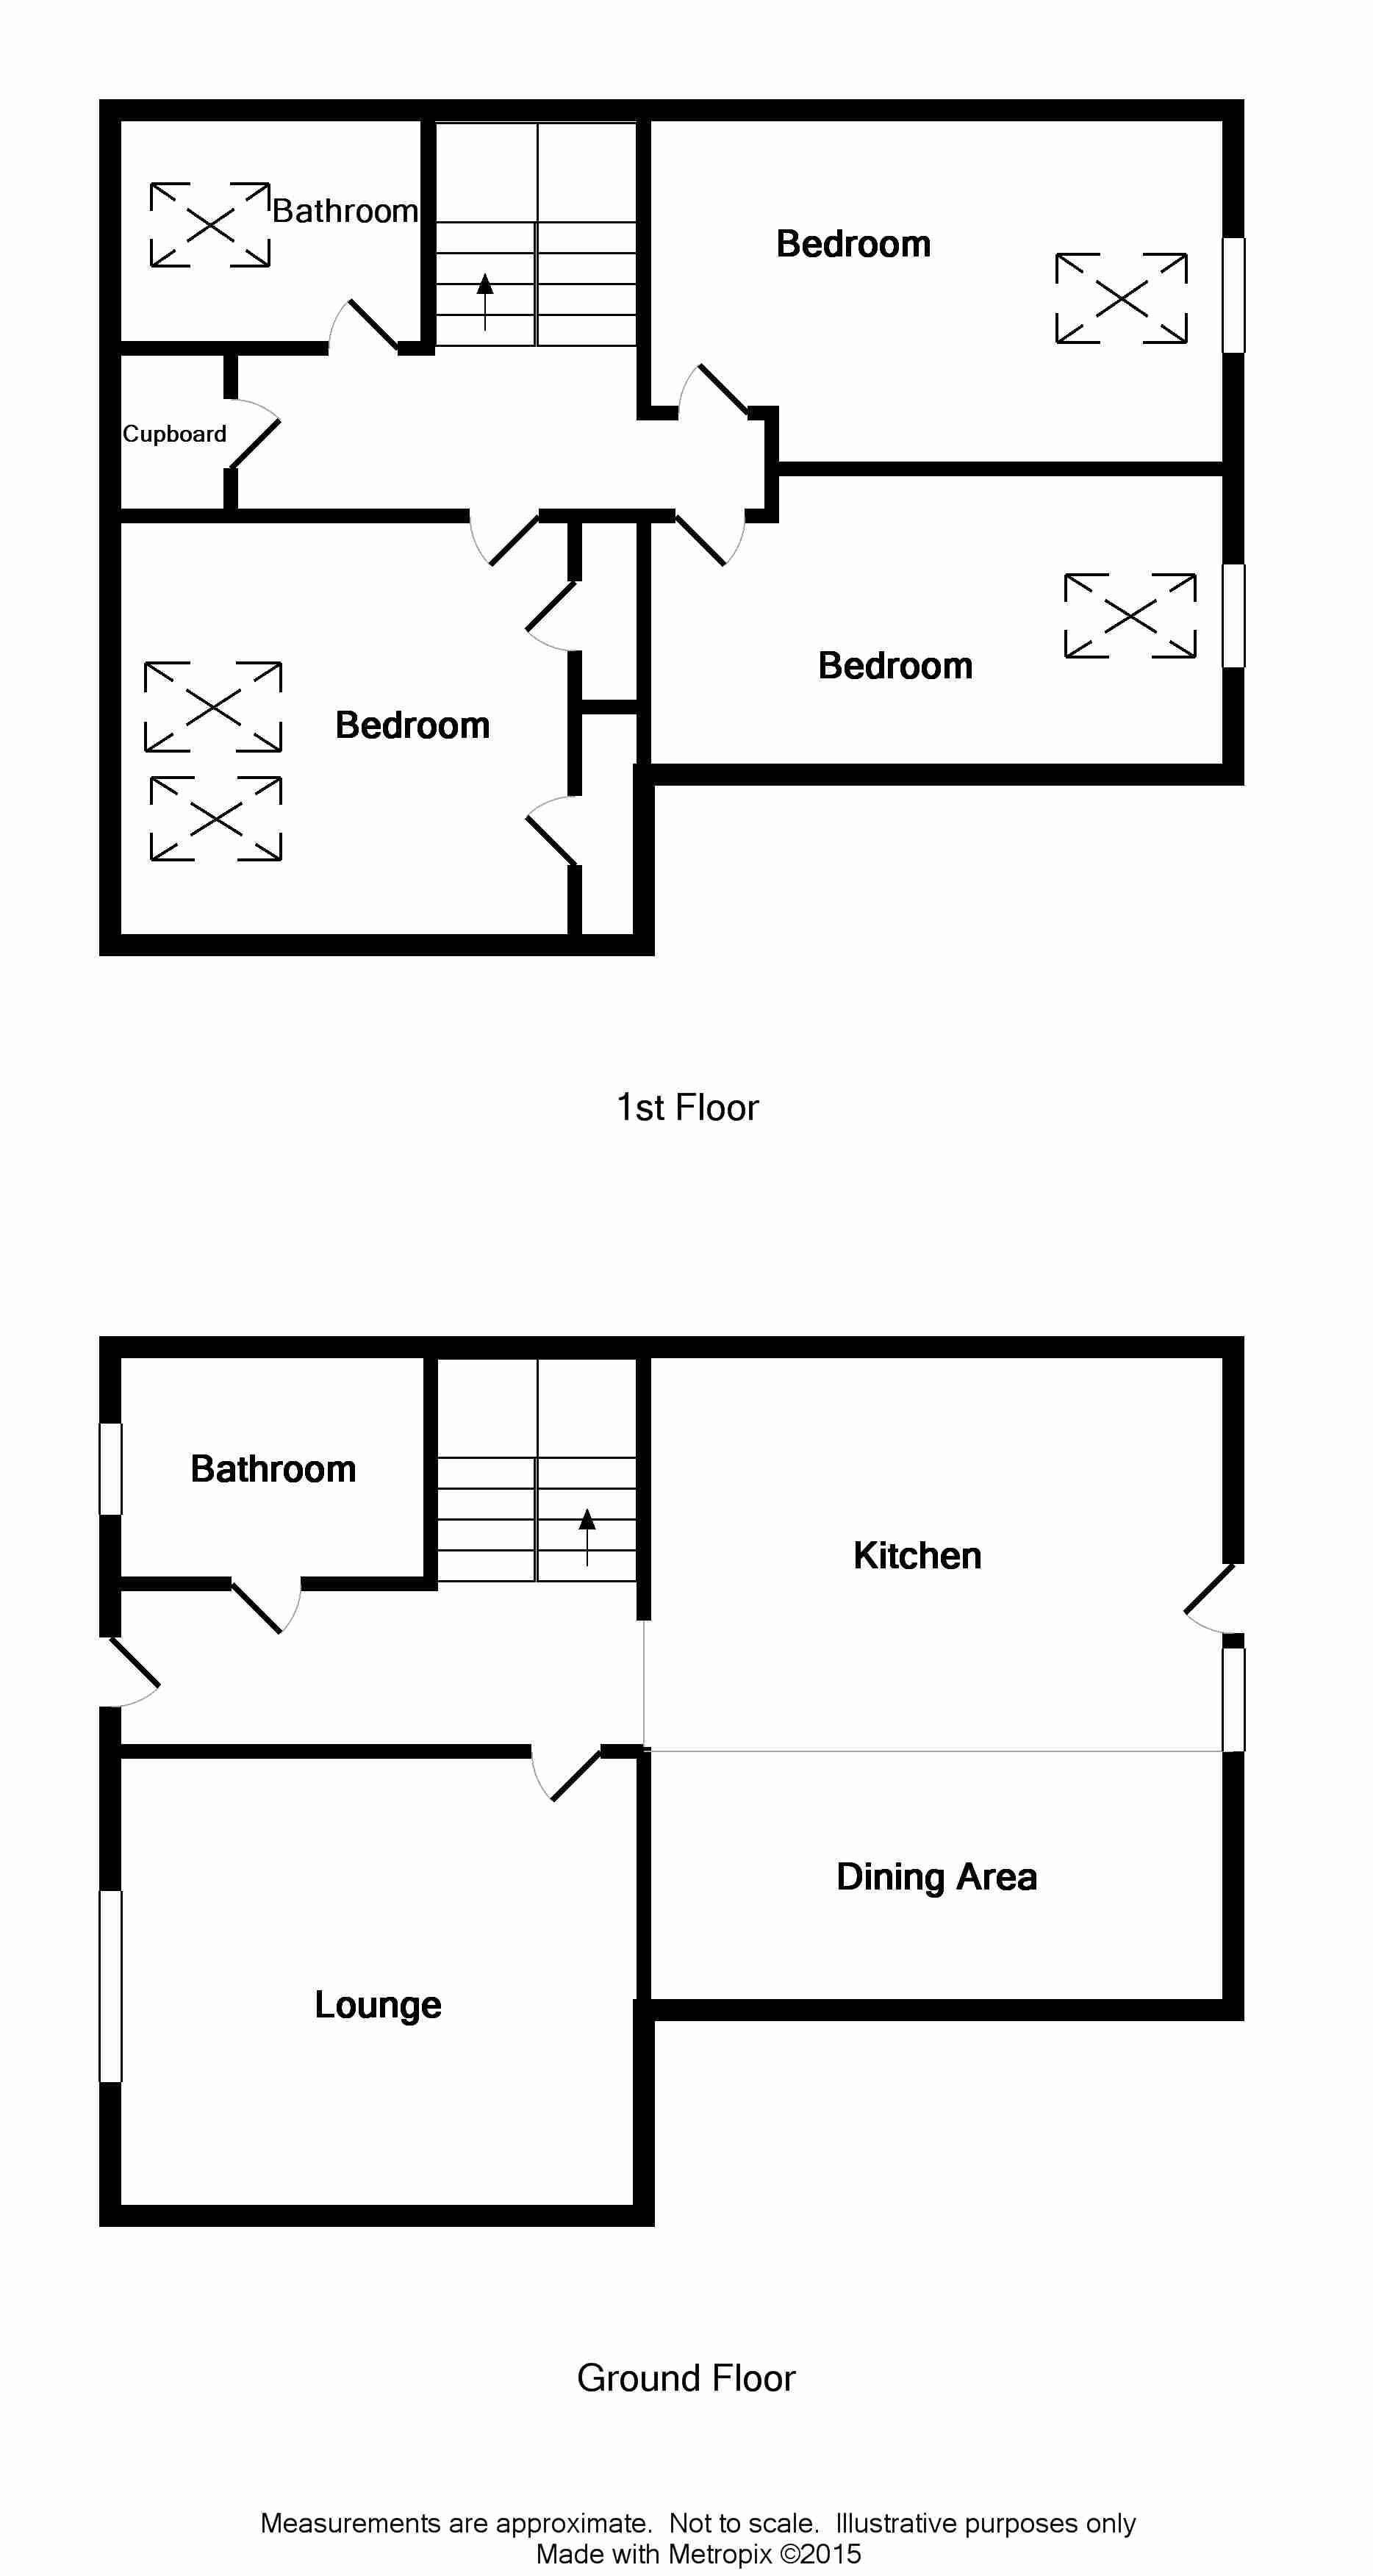 Photograph of Property 2 floorplan